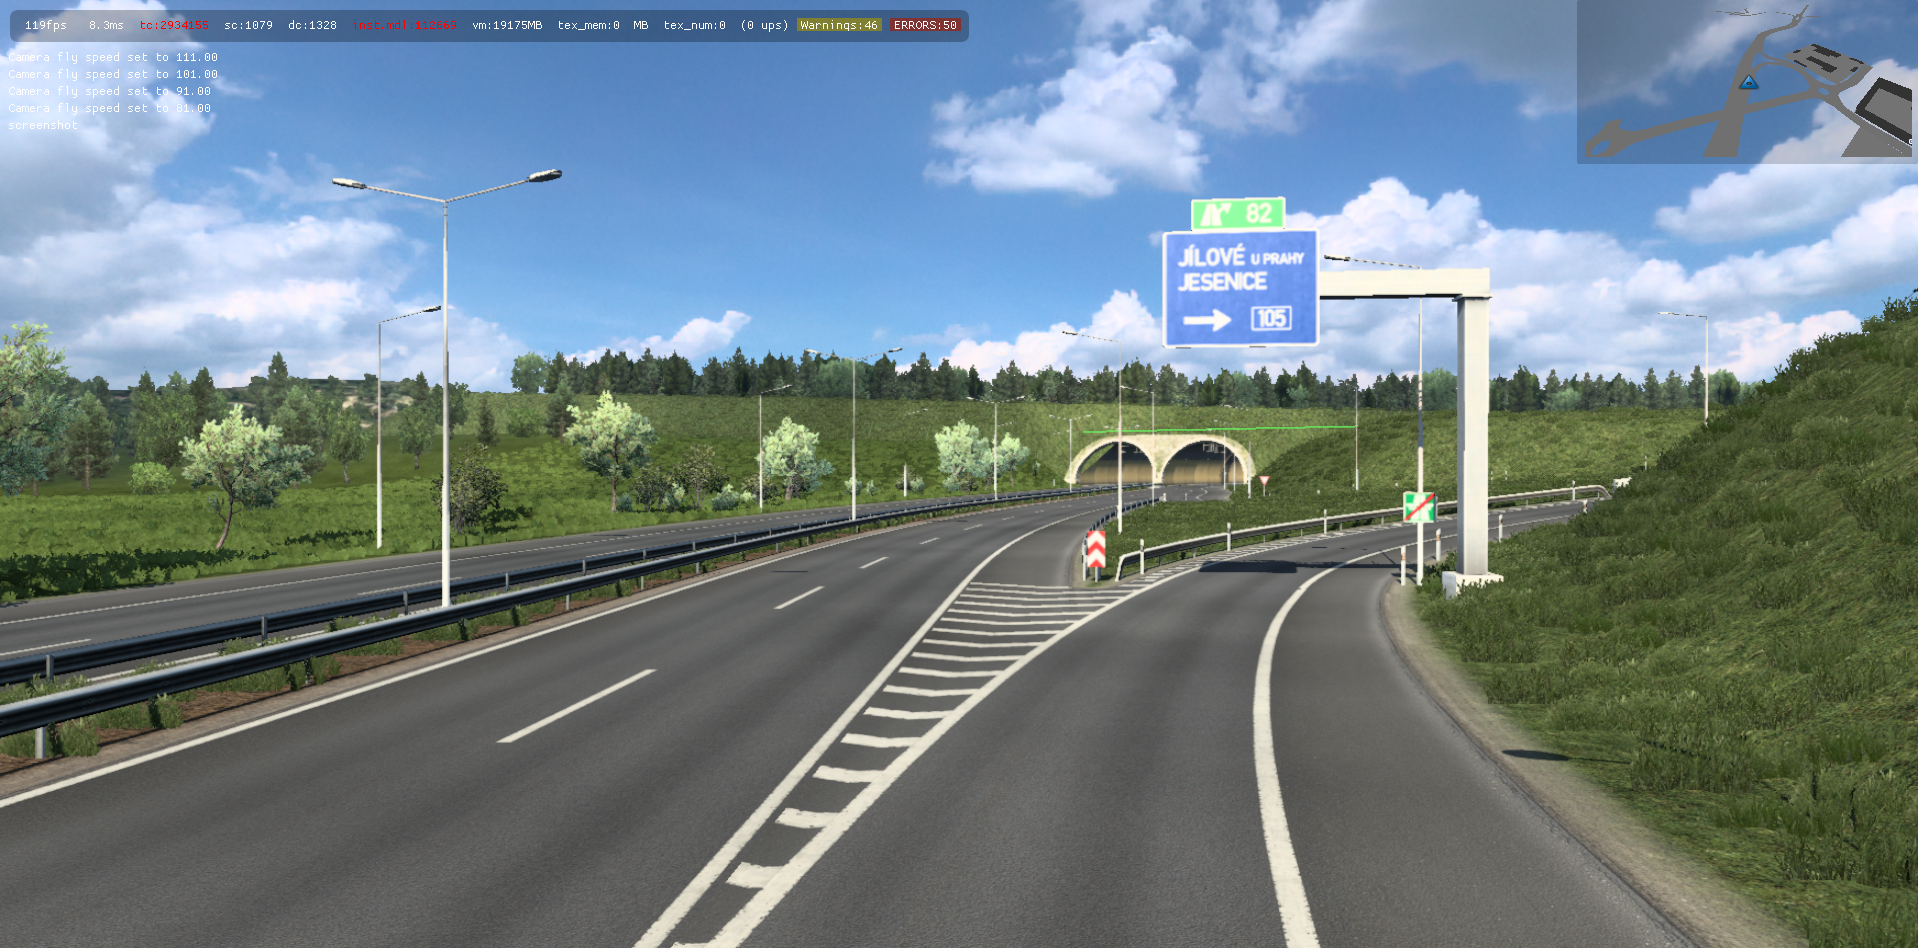 ets2_20210629_201658_00.png